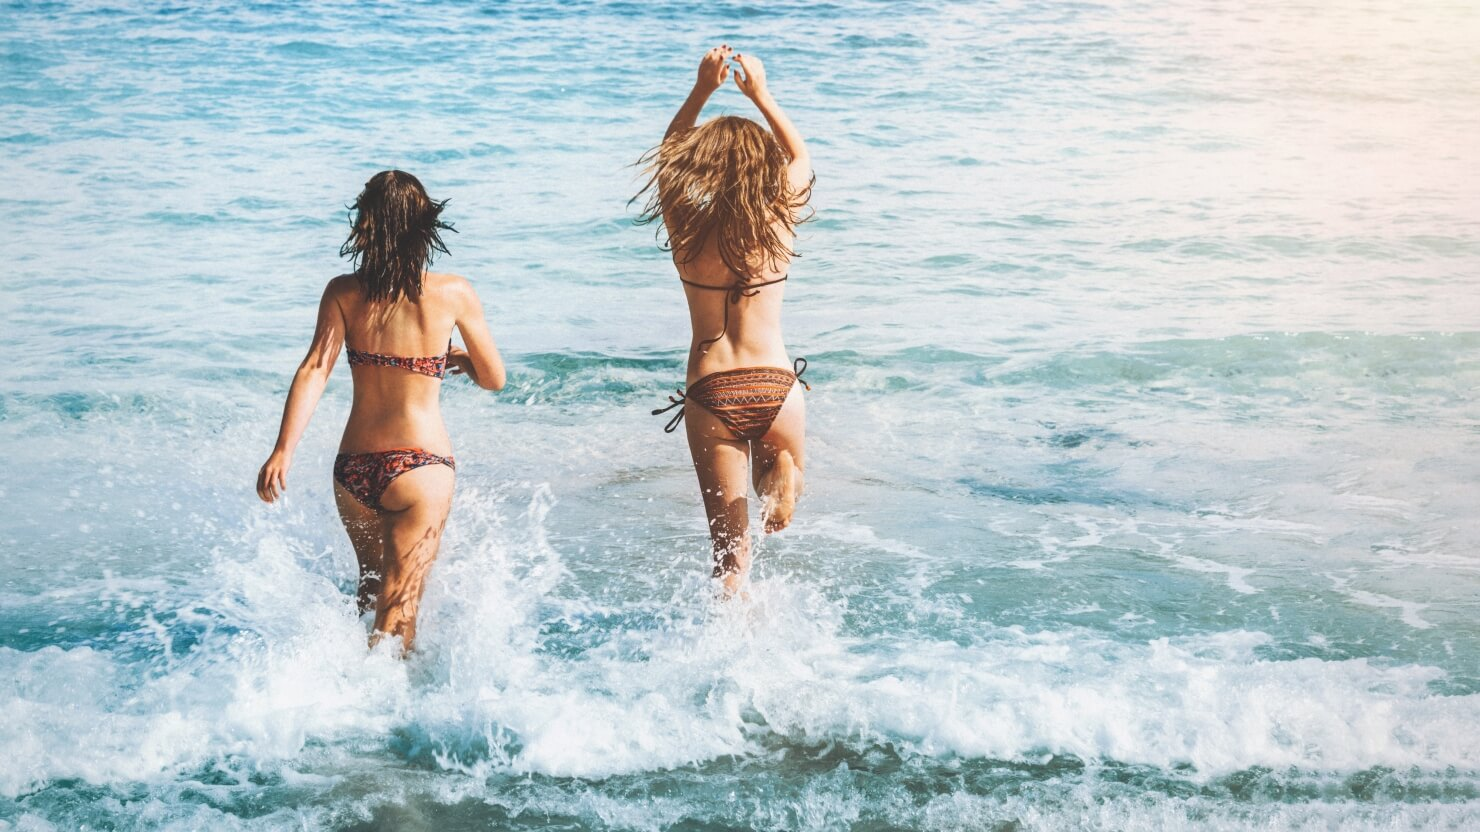 fit, good looking women with tonned up body running towrards the beach.